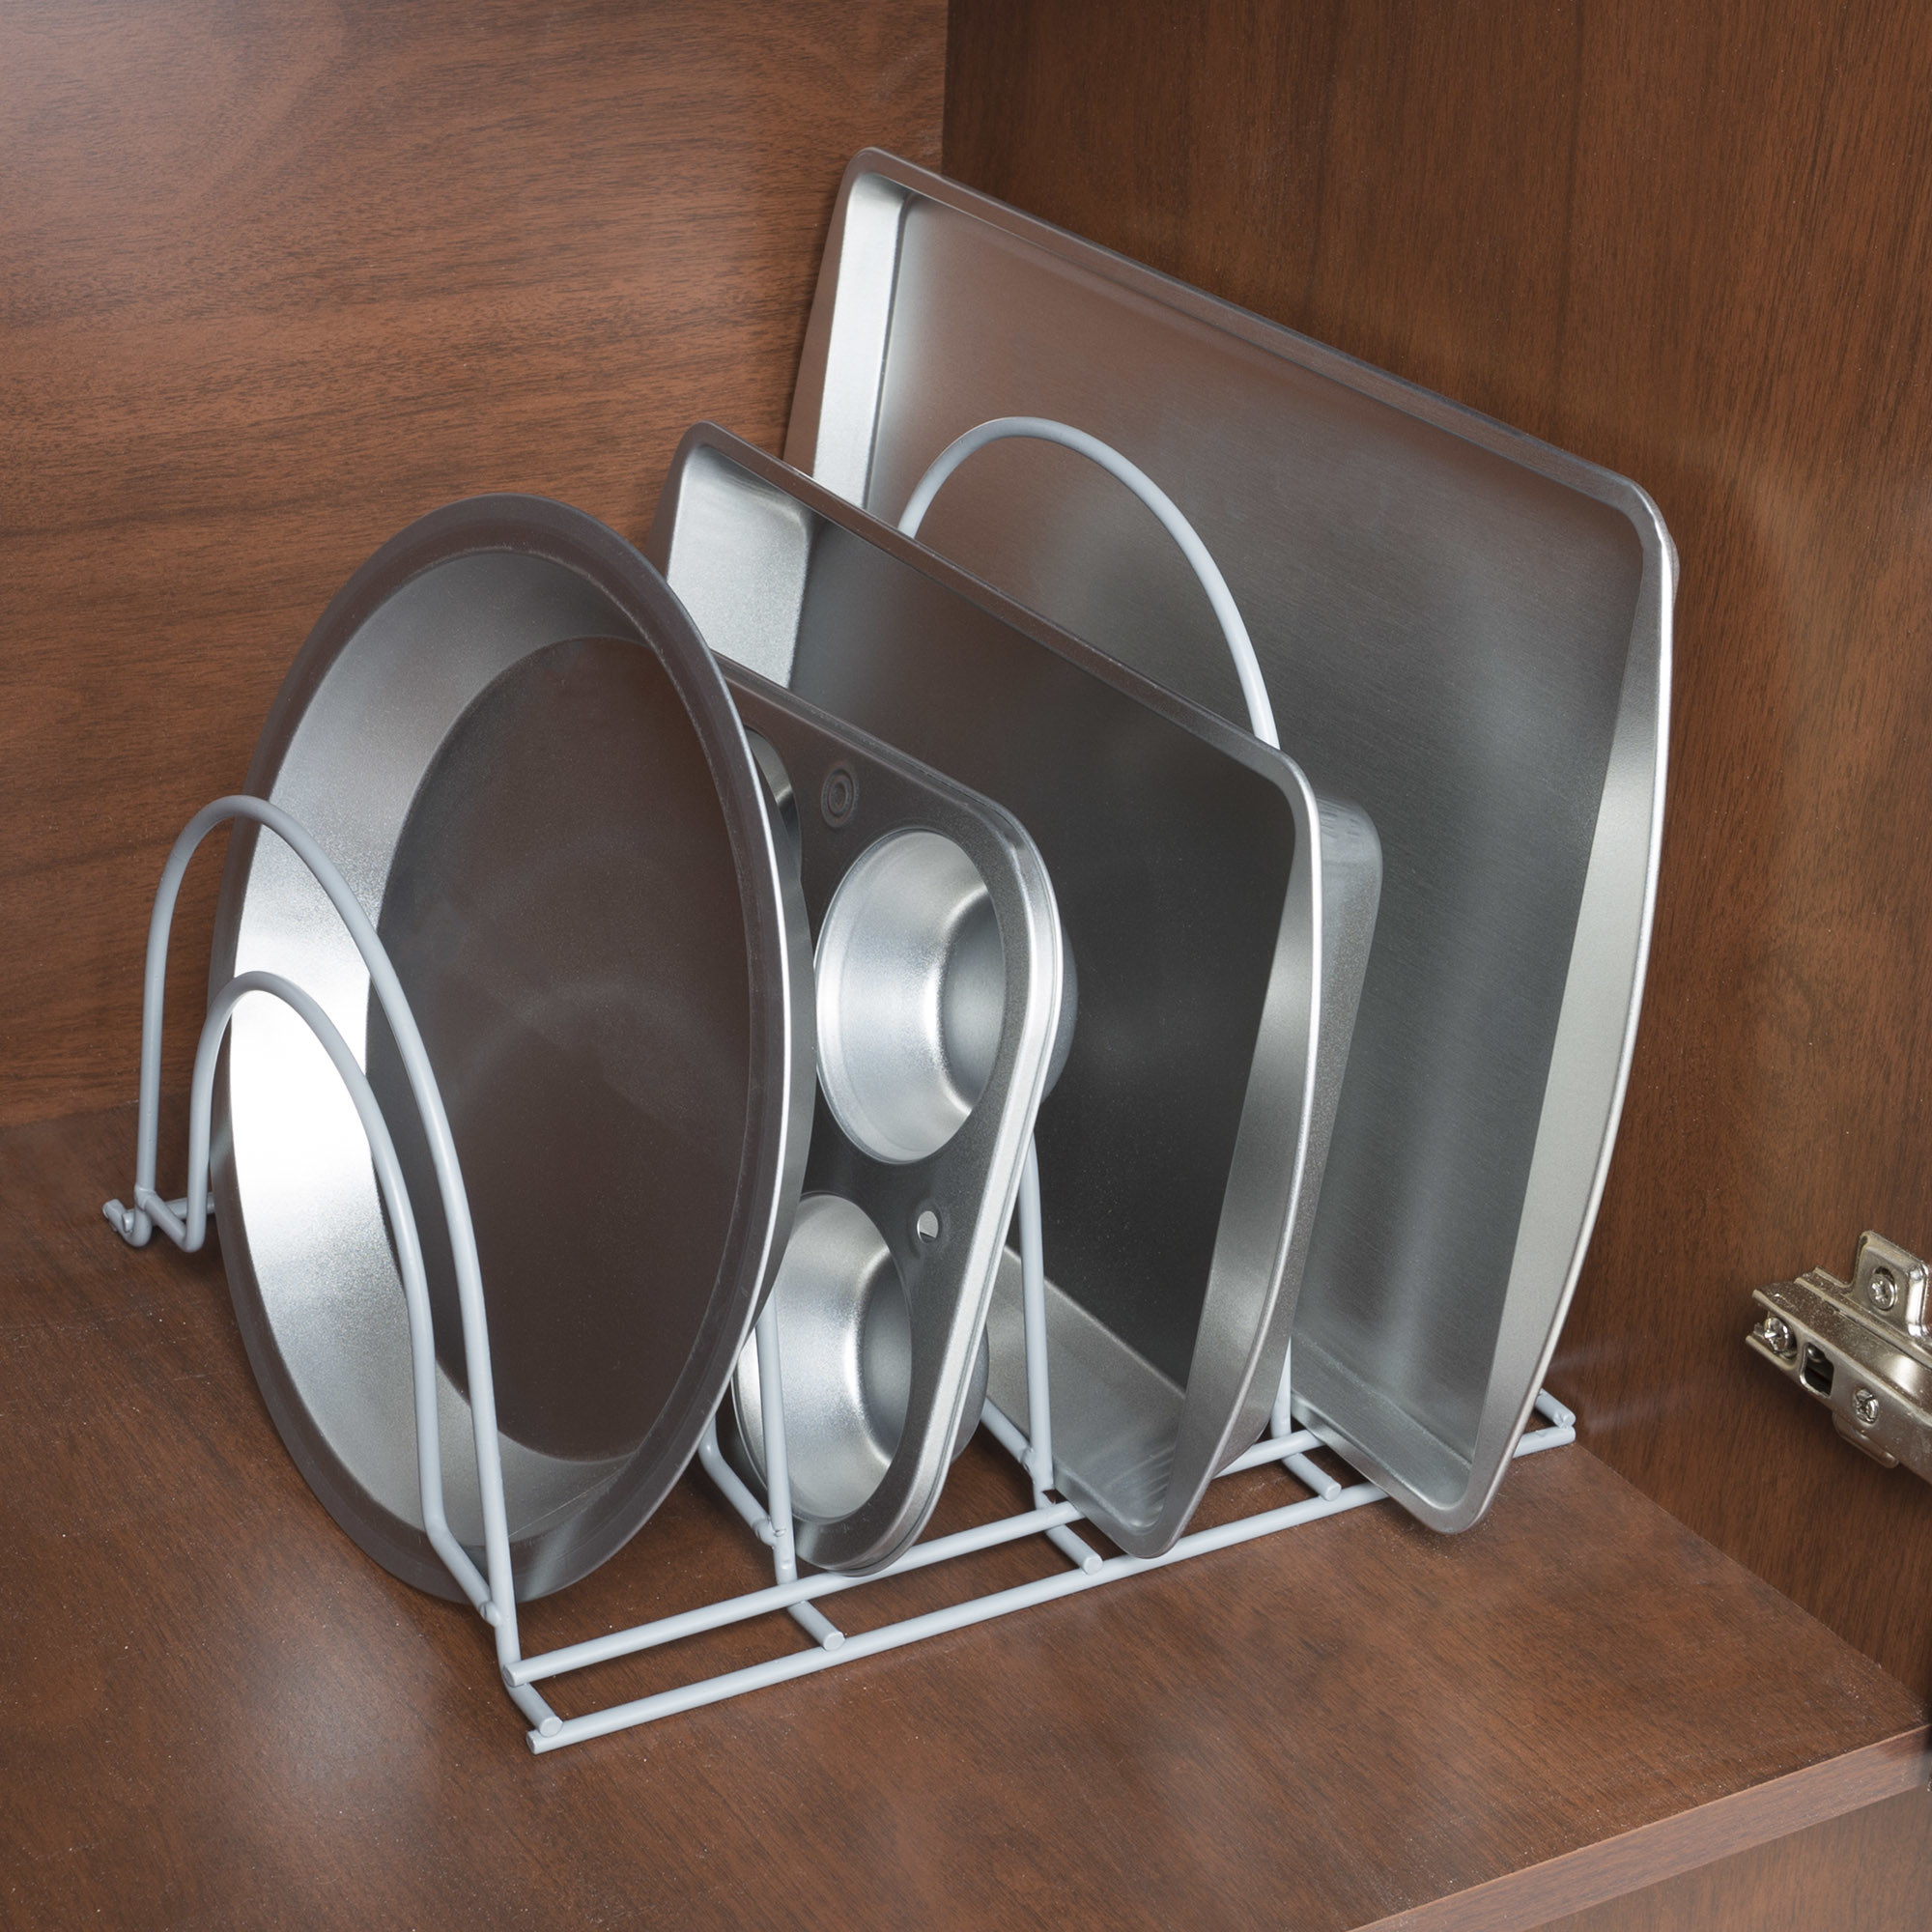 The organizer used in cupboard to hold pots and pans